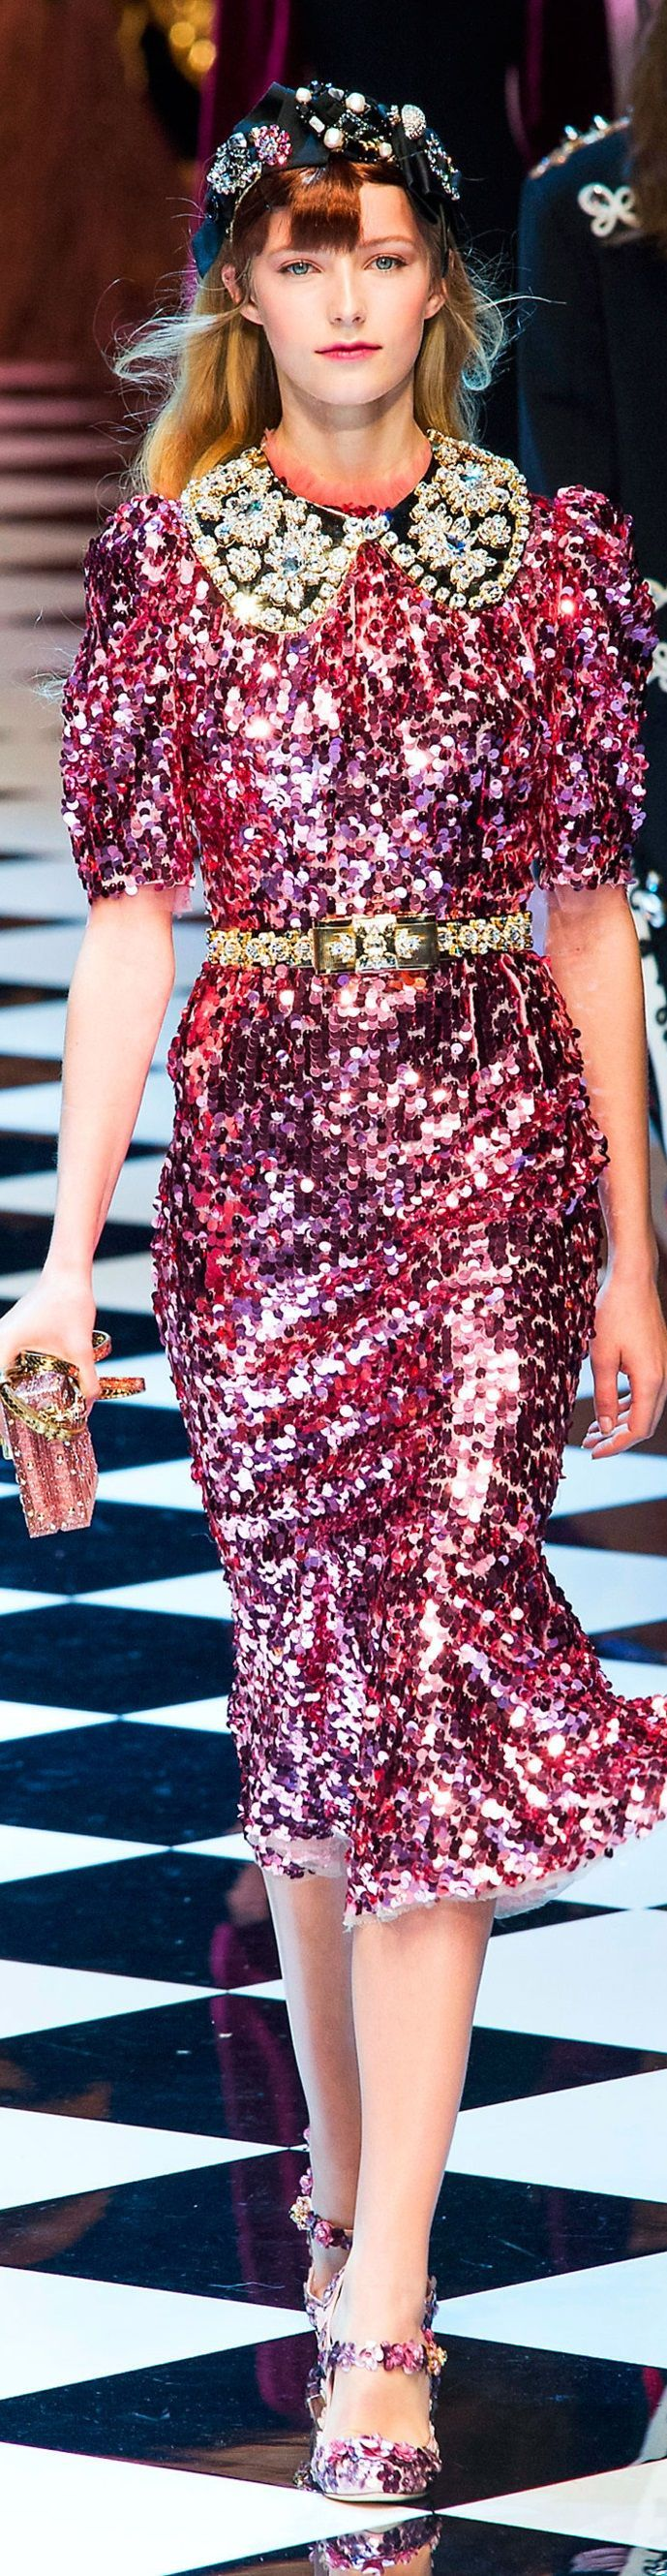 Pink Sequin Dress from Dolce and Gabbana fall 2016 RTW    // Pinned on @benitathediva, DIY fashion inspiration.